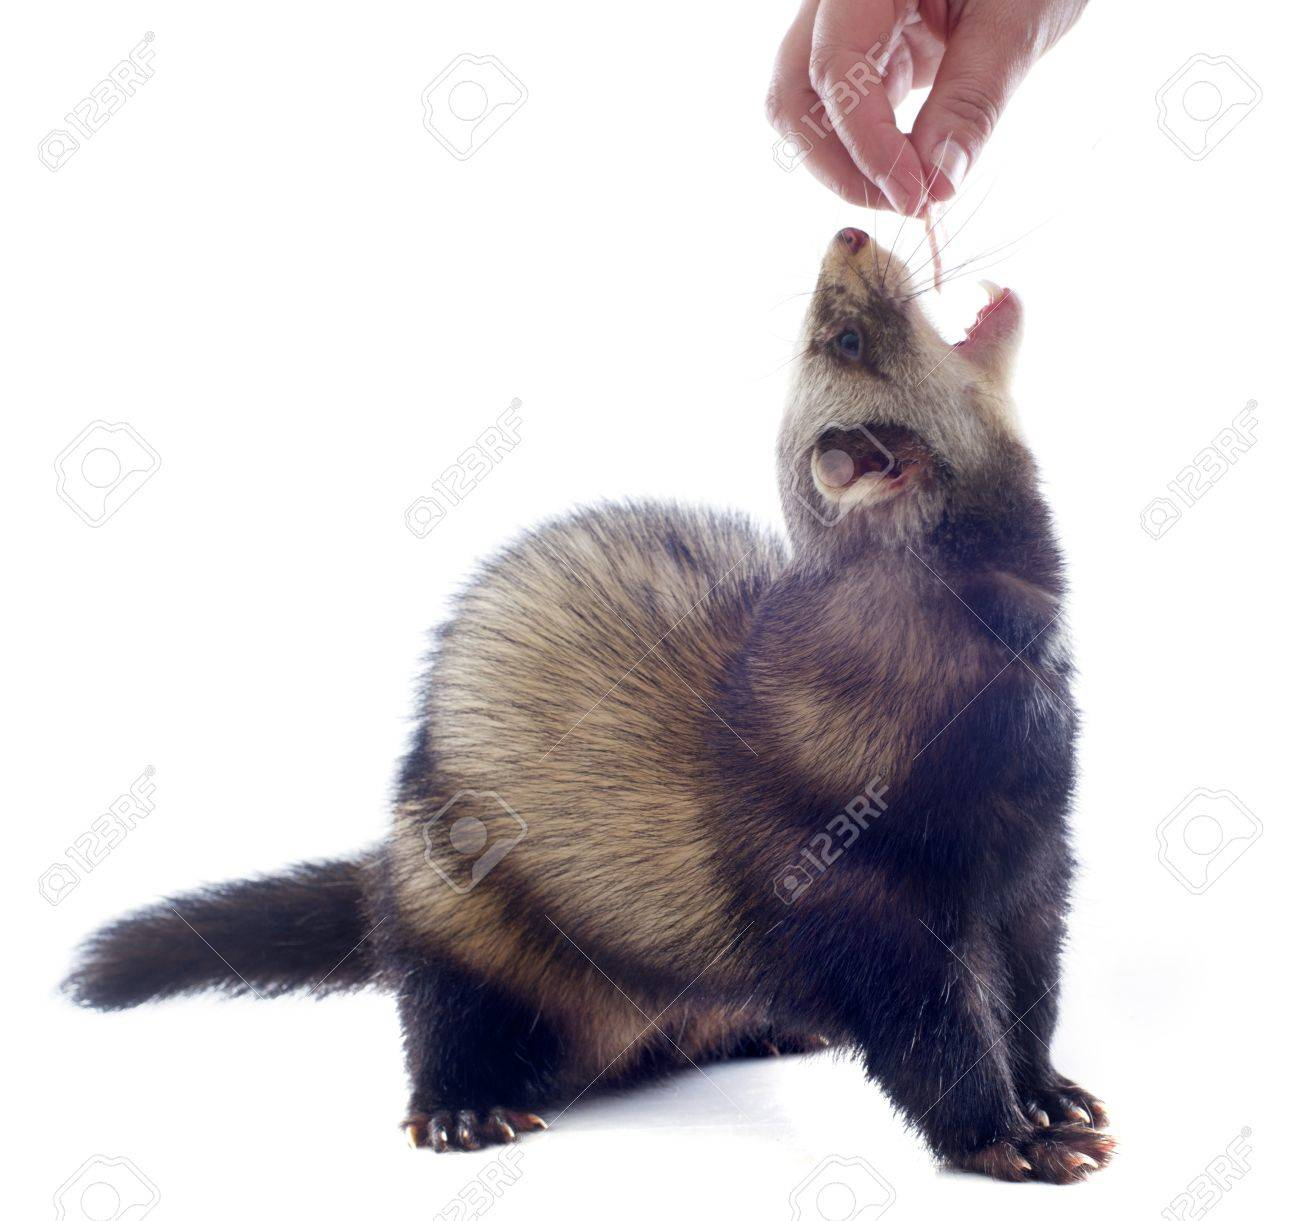 a male ferret feeding in a hand in front of white background Stock Photo - 19256097